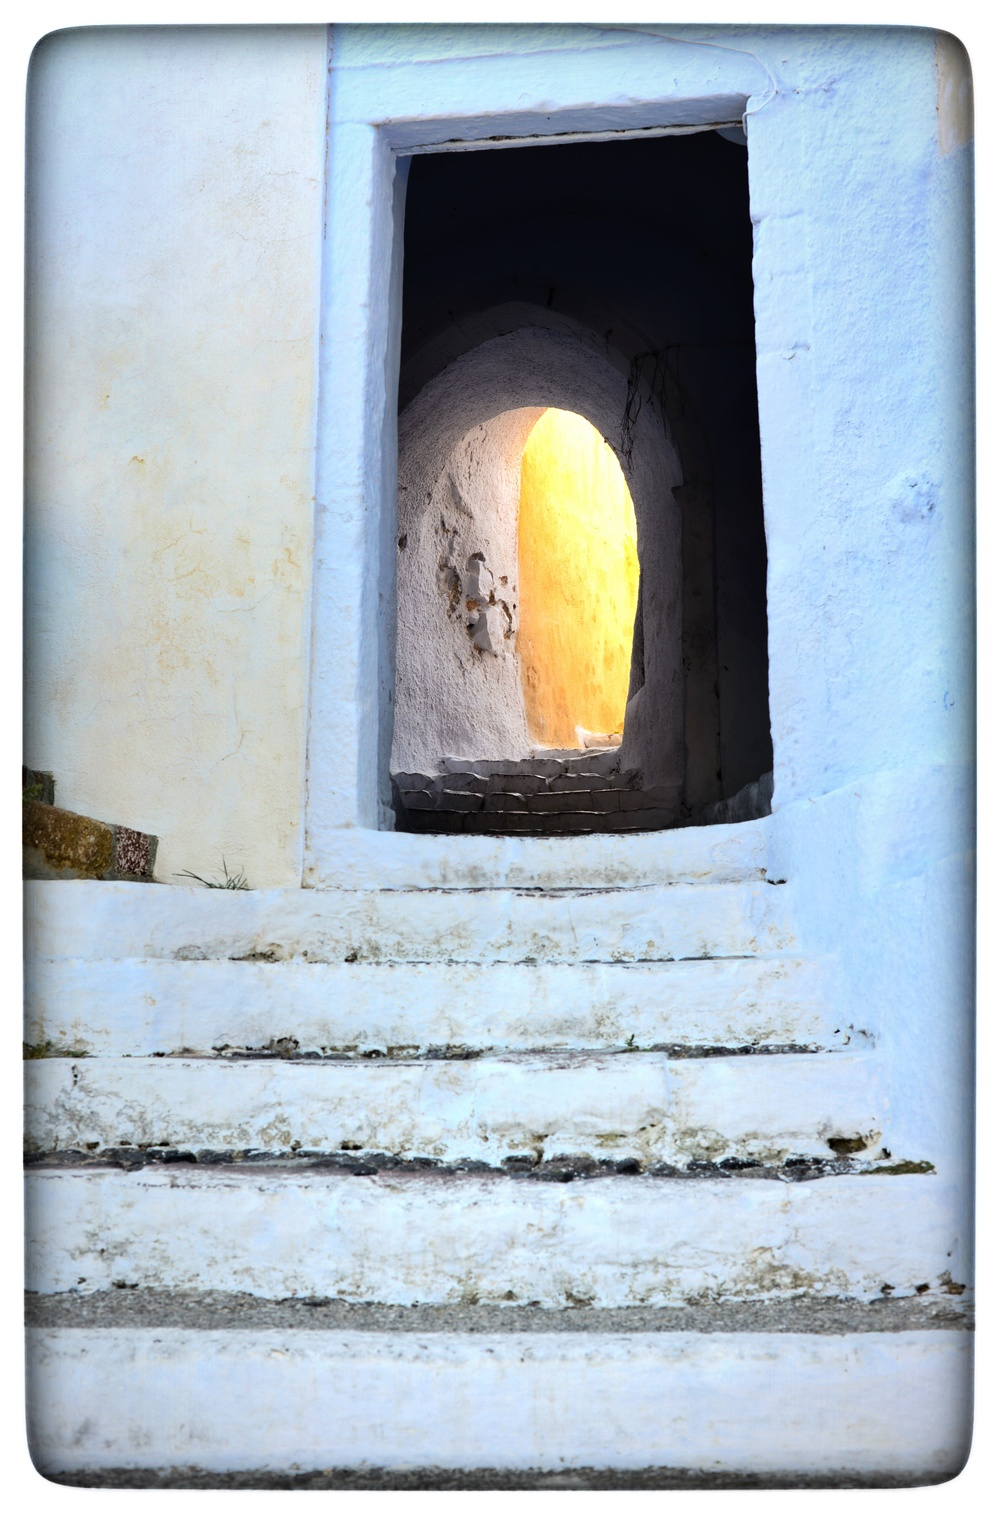 Steps and tunnel to one of the many churches in Pyrgos.